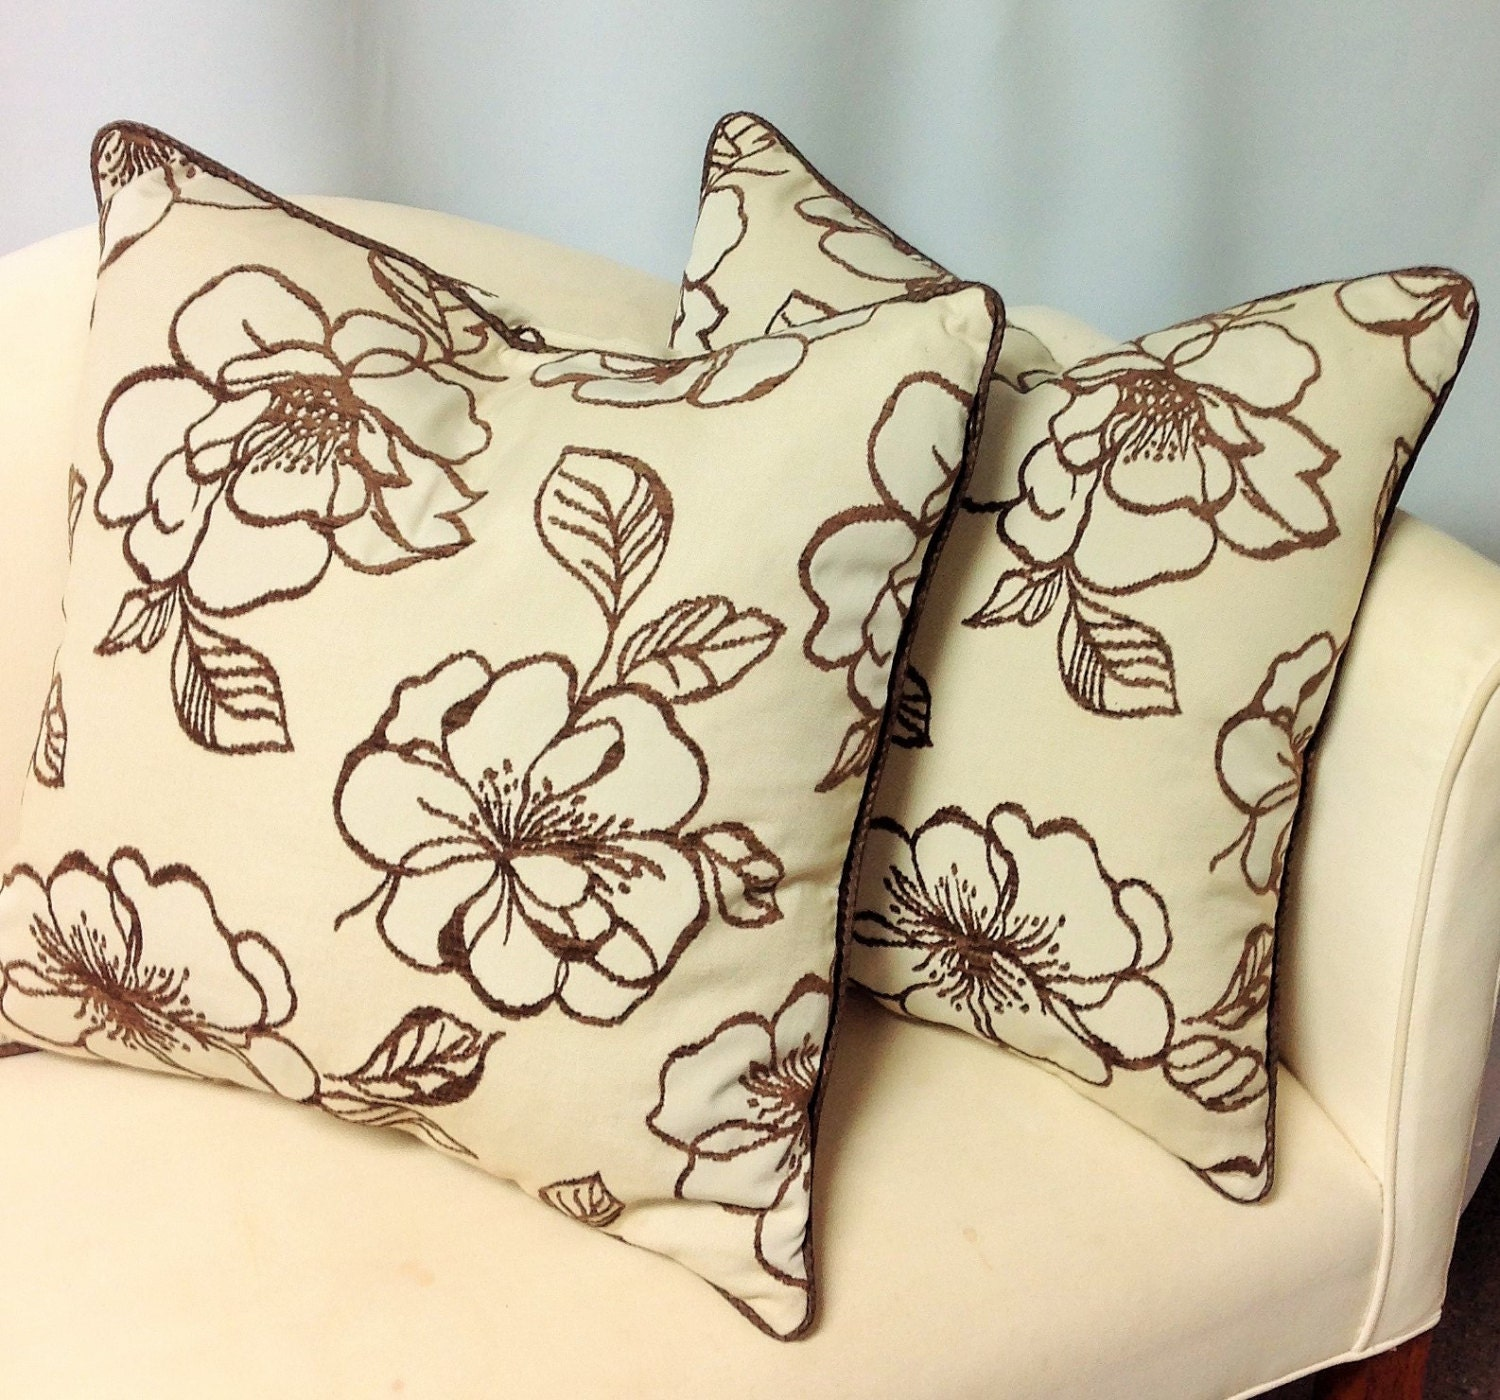 How To Make Decorative Pillows With Cording : Decorative Pillow W/ Cording Invisible Zipper Down Insert